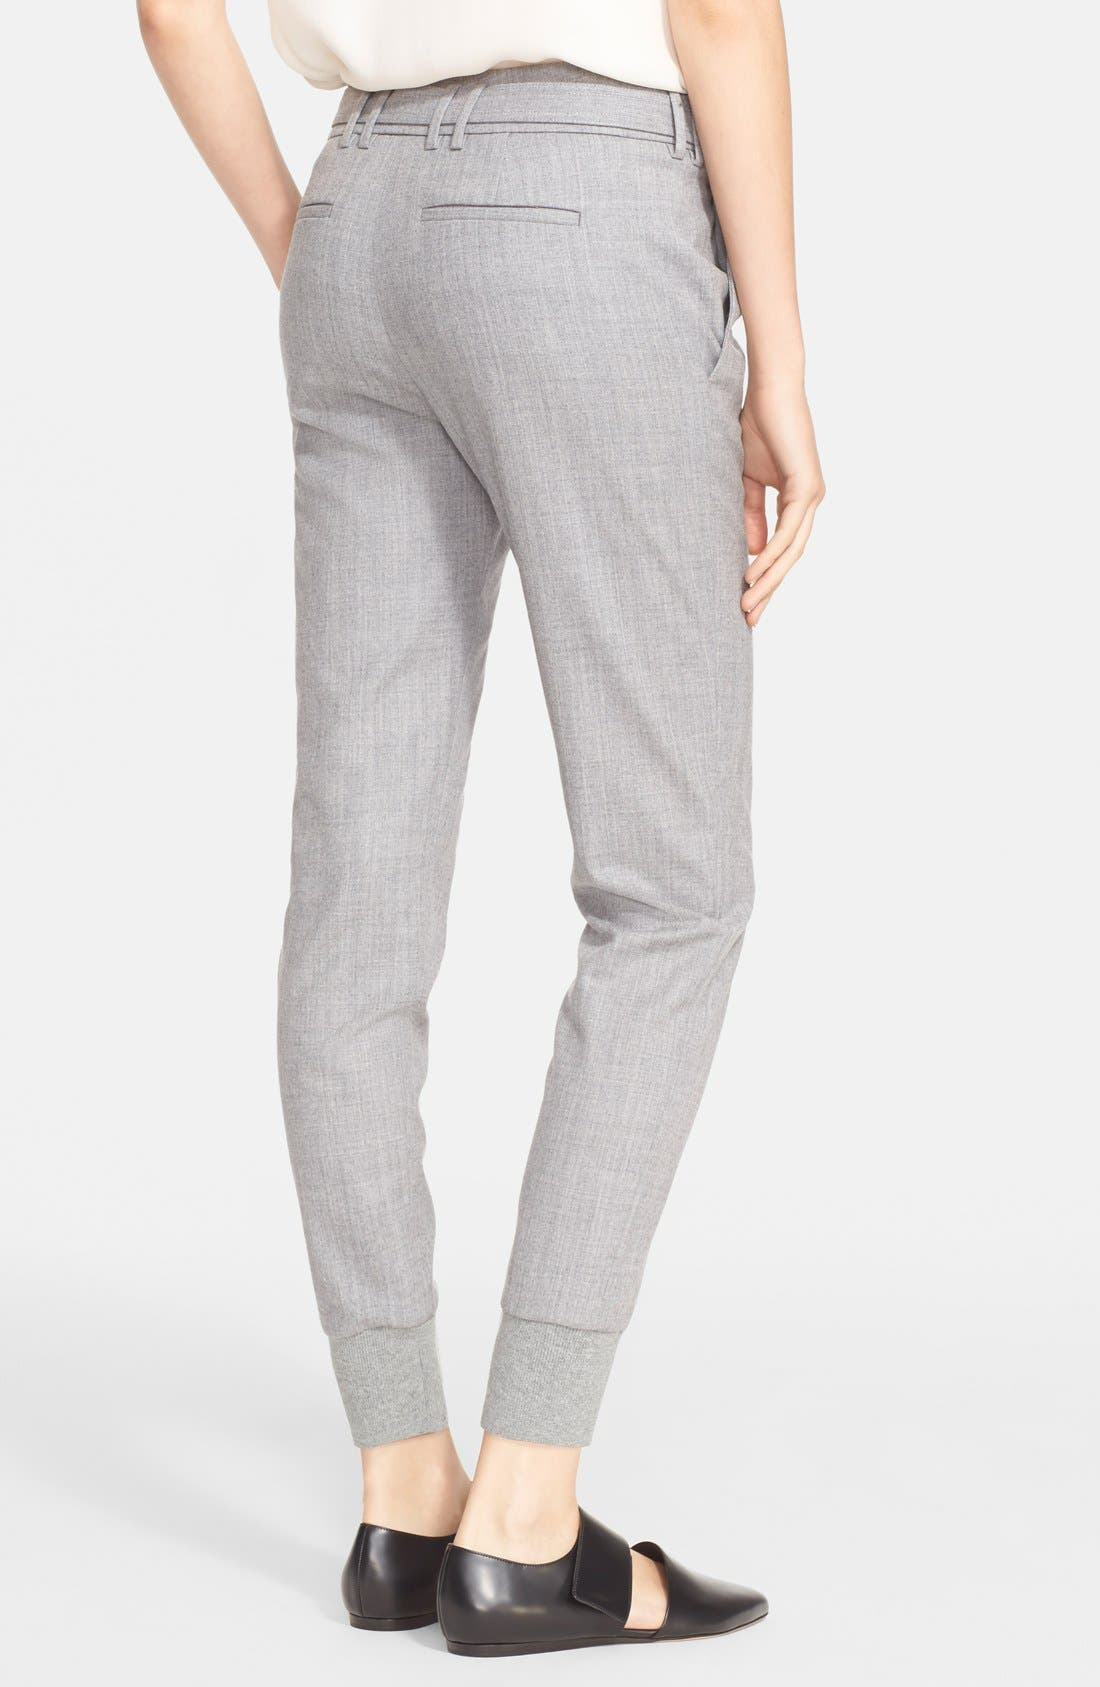 Belted Rib Cuff Jogger Pants,                             Alternate thumbnail 2, color,                             Light Heather Grey